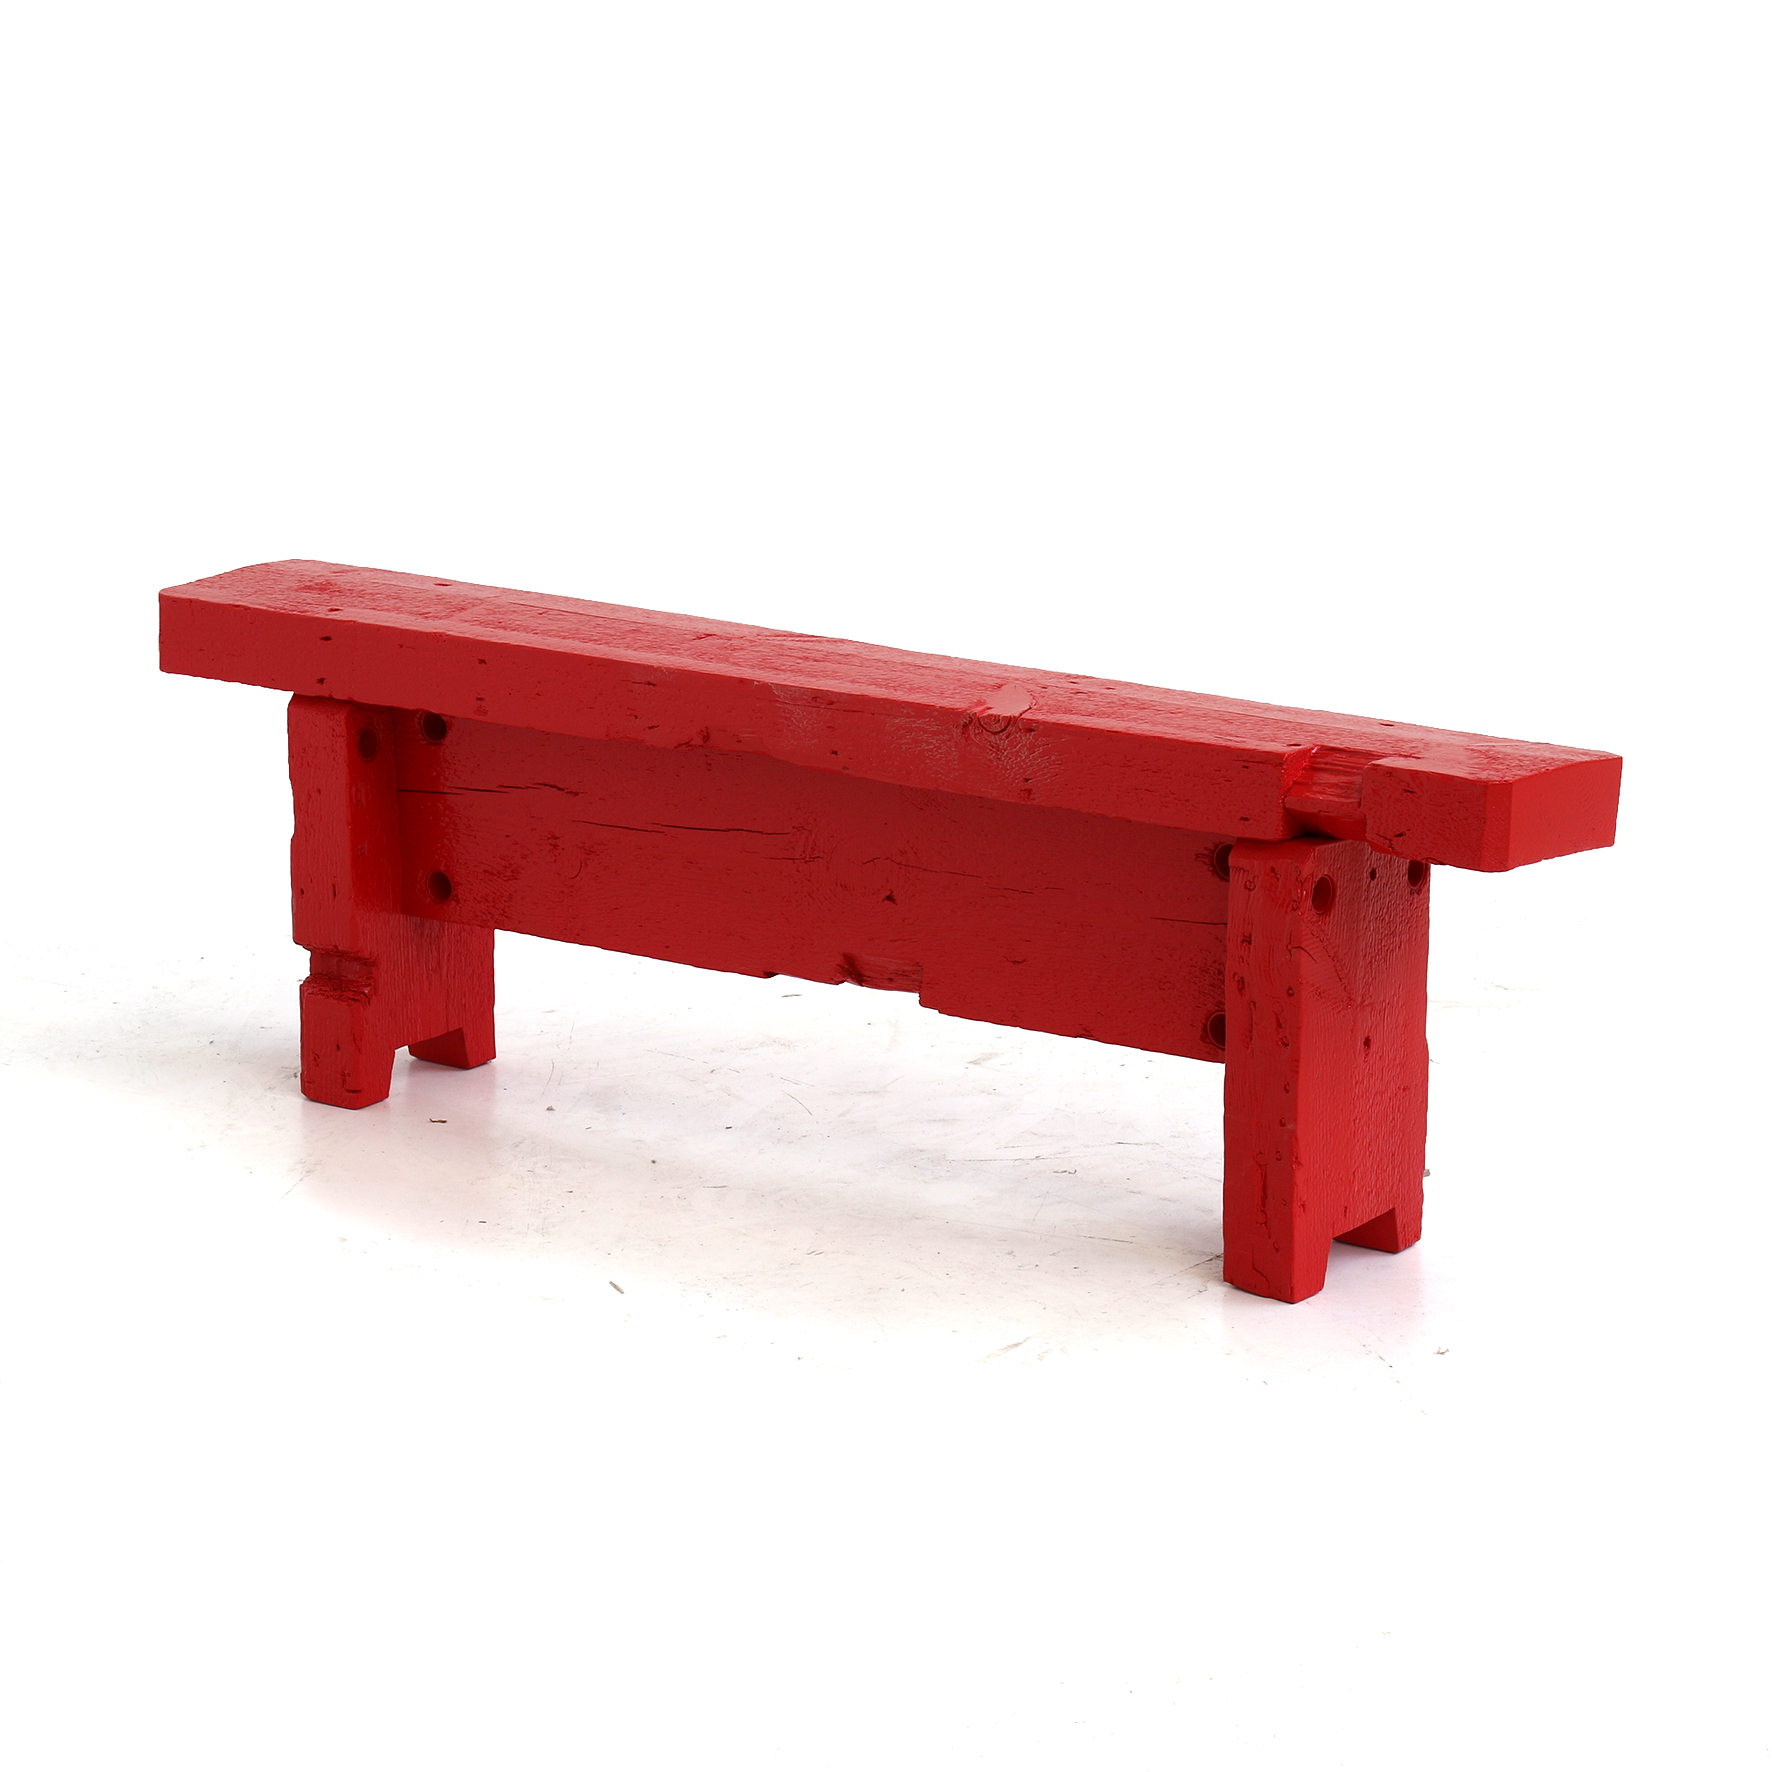 Tuin Loungebank Outlet.Benches Product Categories Piet Hein Eek